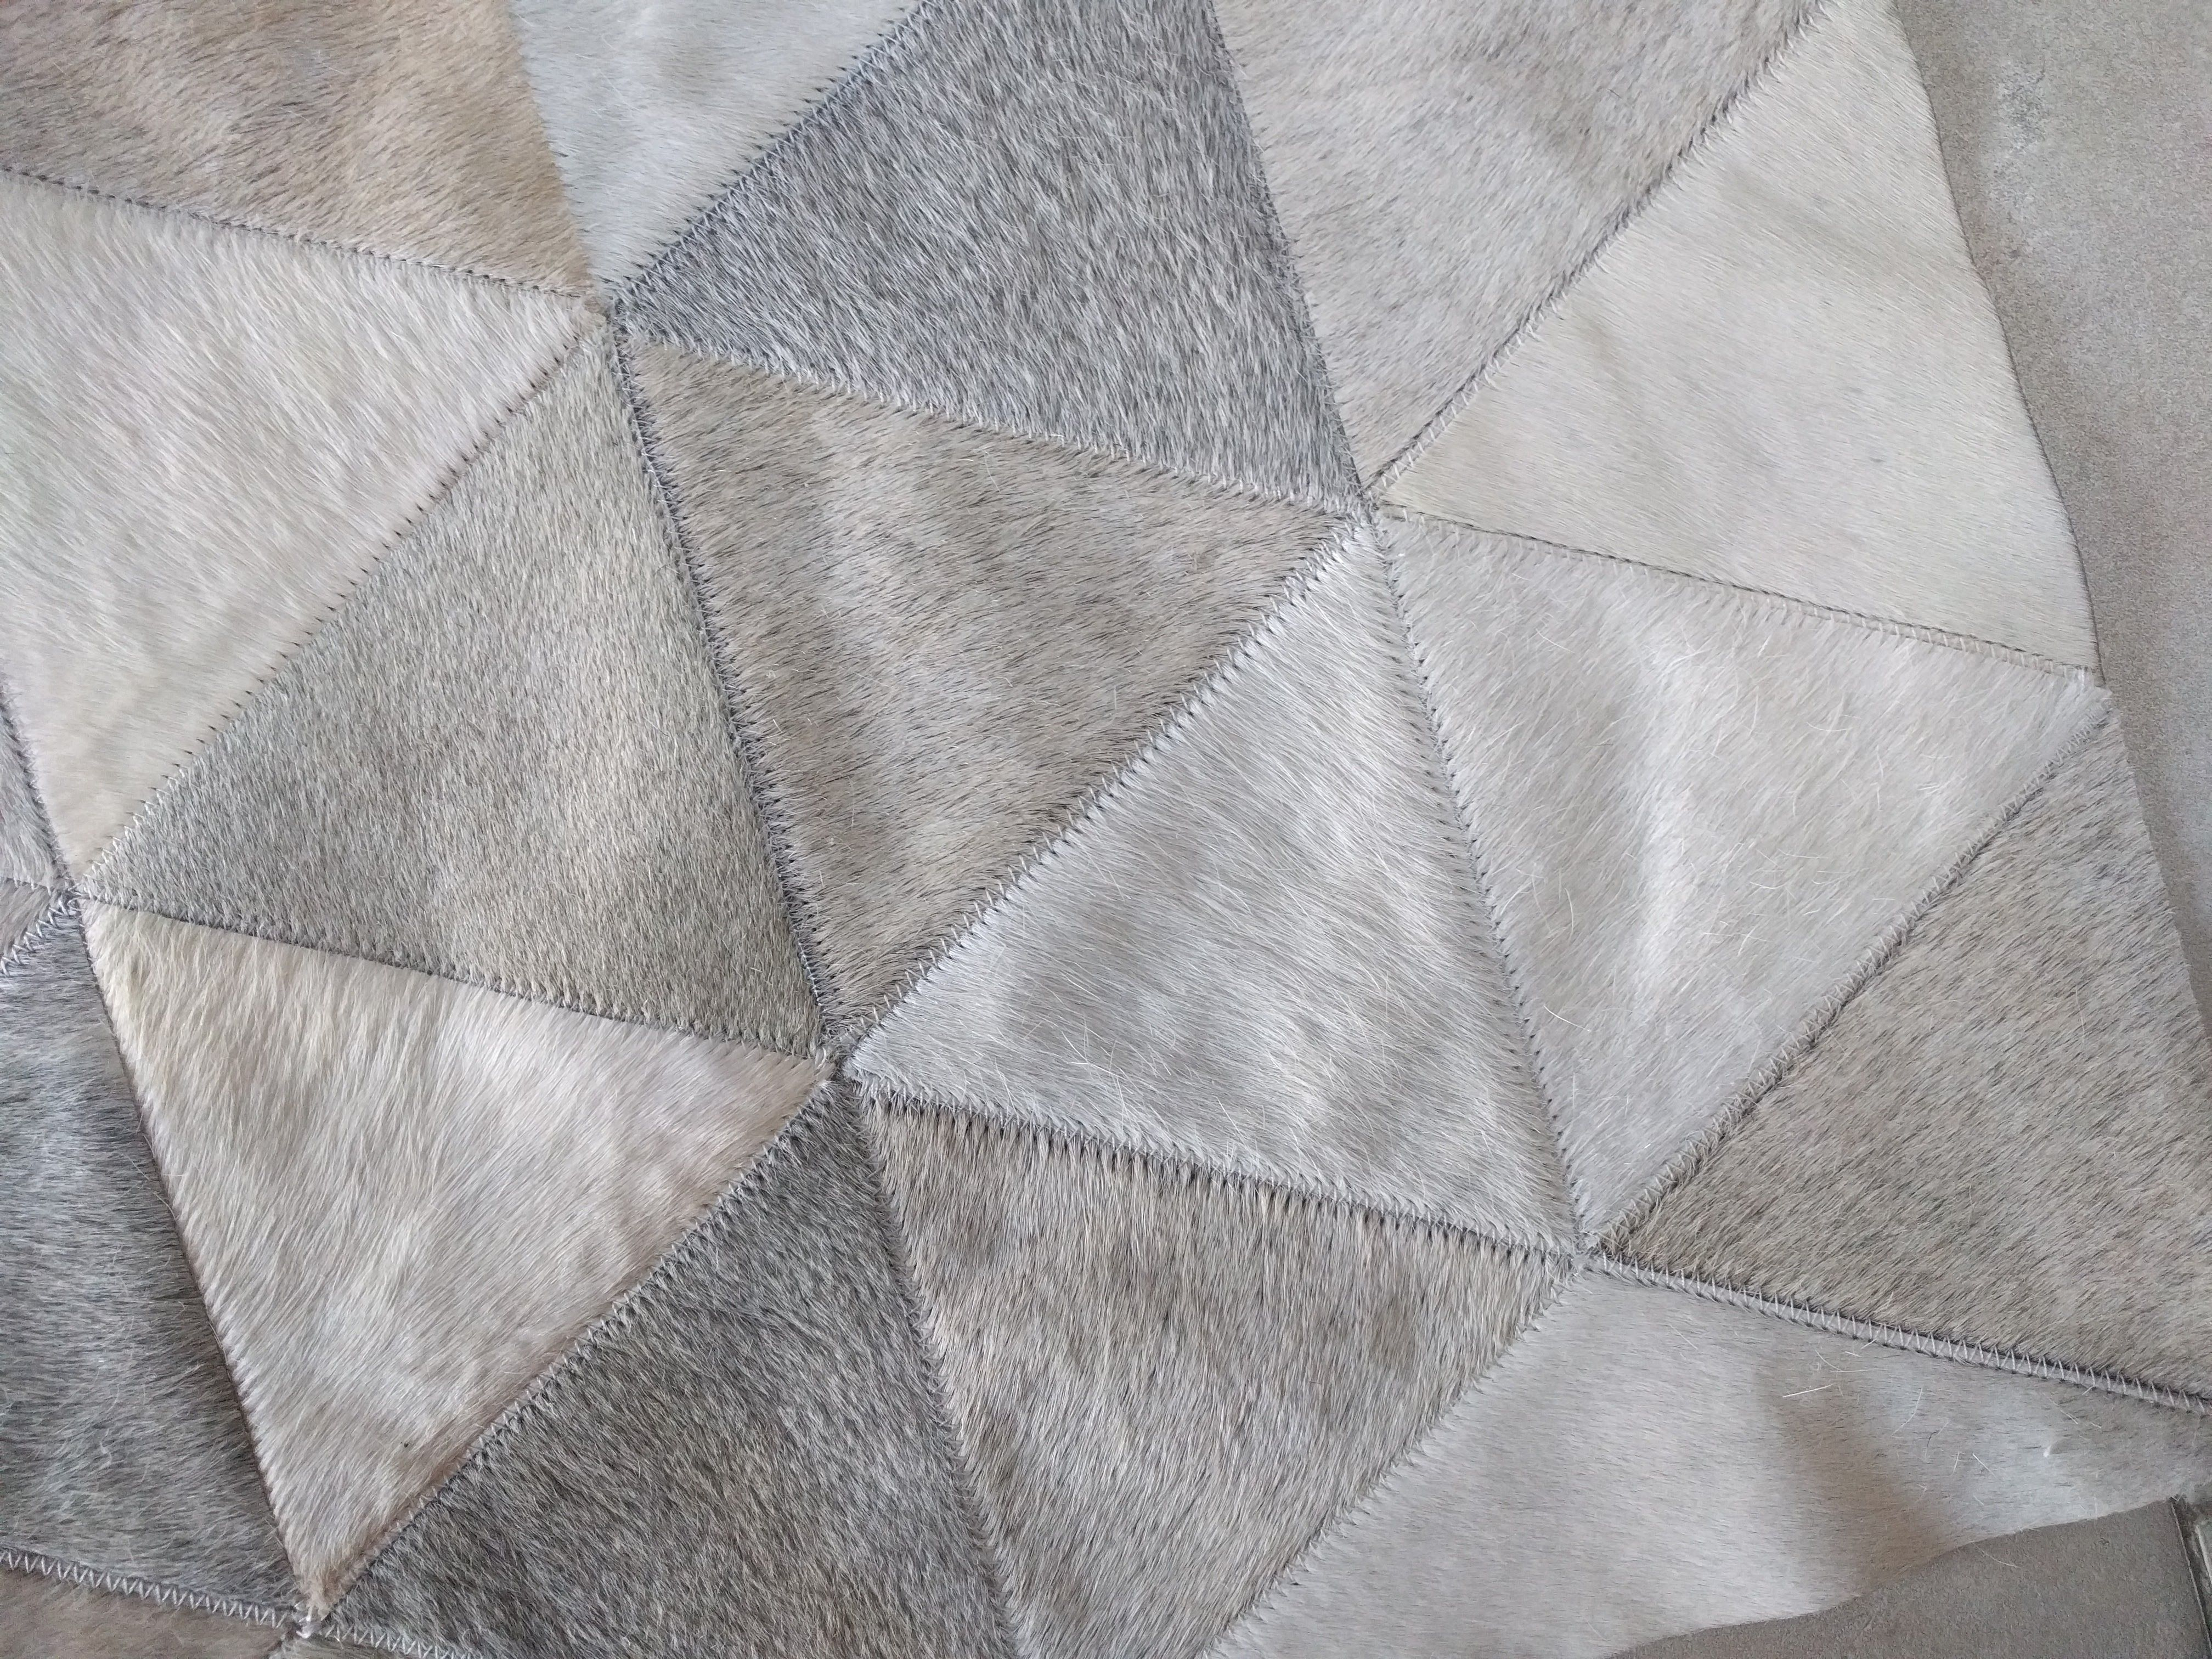 Obsessed Taupe Cream Beige And Gray Kata Patchwork Cowhide Rug Custom And Special Like No Other Patchwork Cowhide Rug Patchwork Cowhide Cow Hide Rug